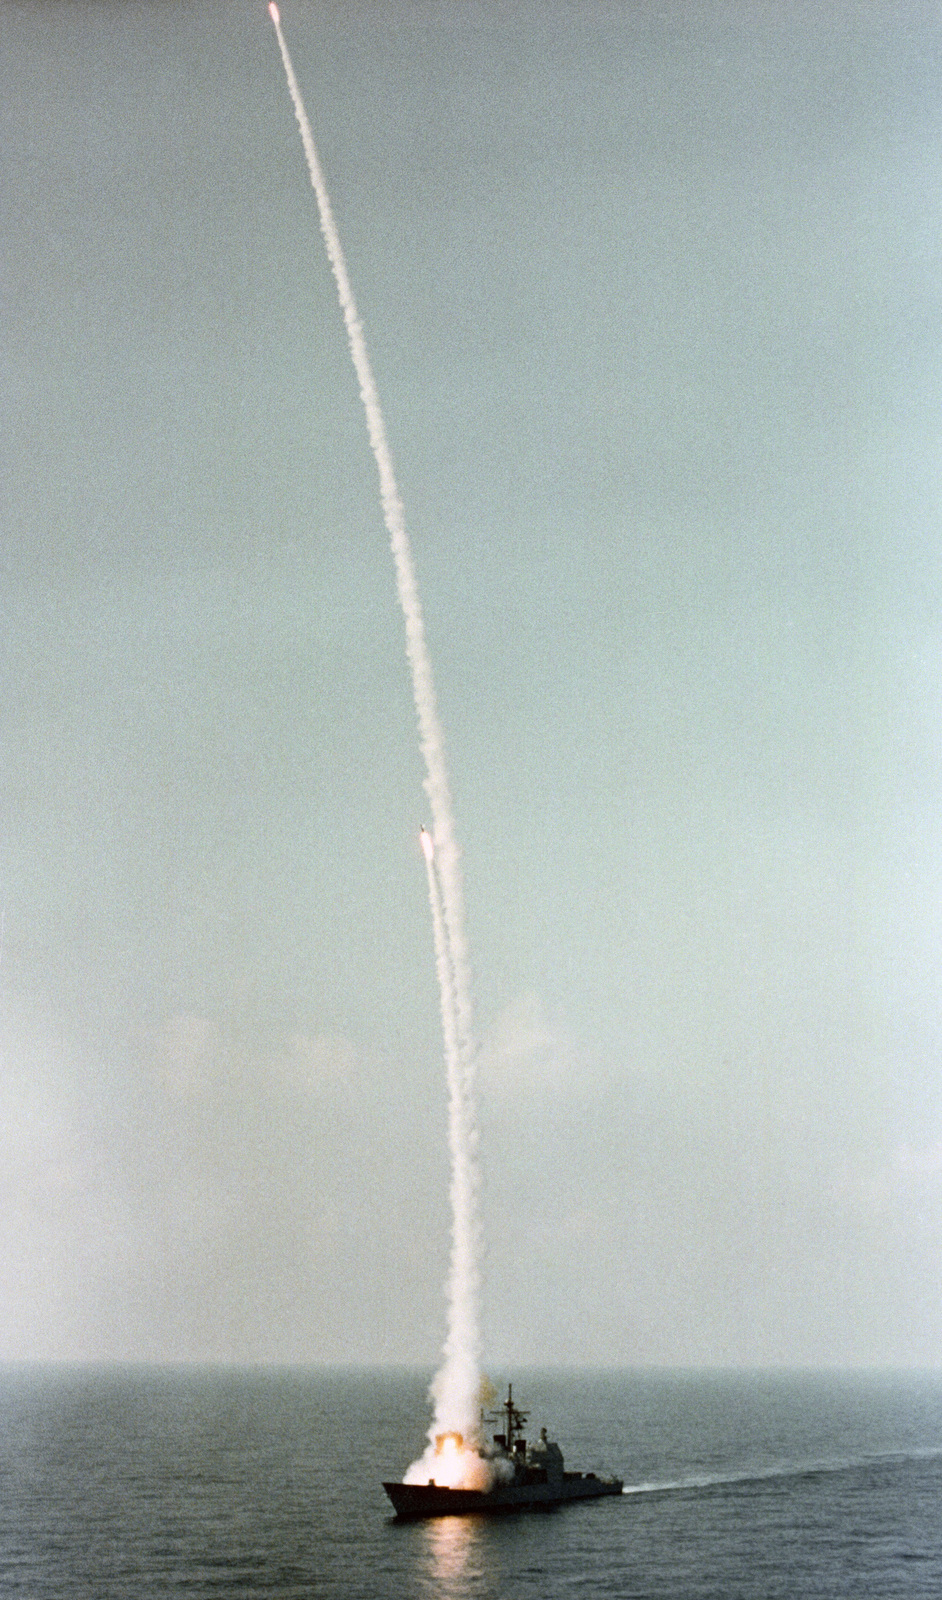 The guided missile cruiser BUNKER HILL (CG 52) test fires two RIM-66C SM-2 missiles from the forward Mark 41 Vertical Launching System (VLS) during sea trails